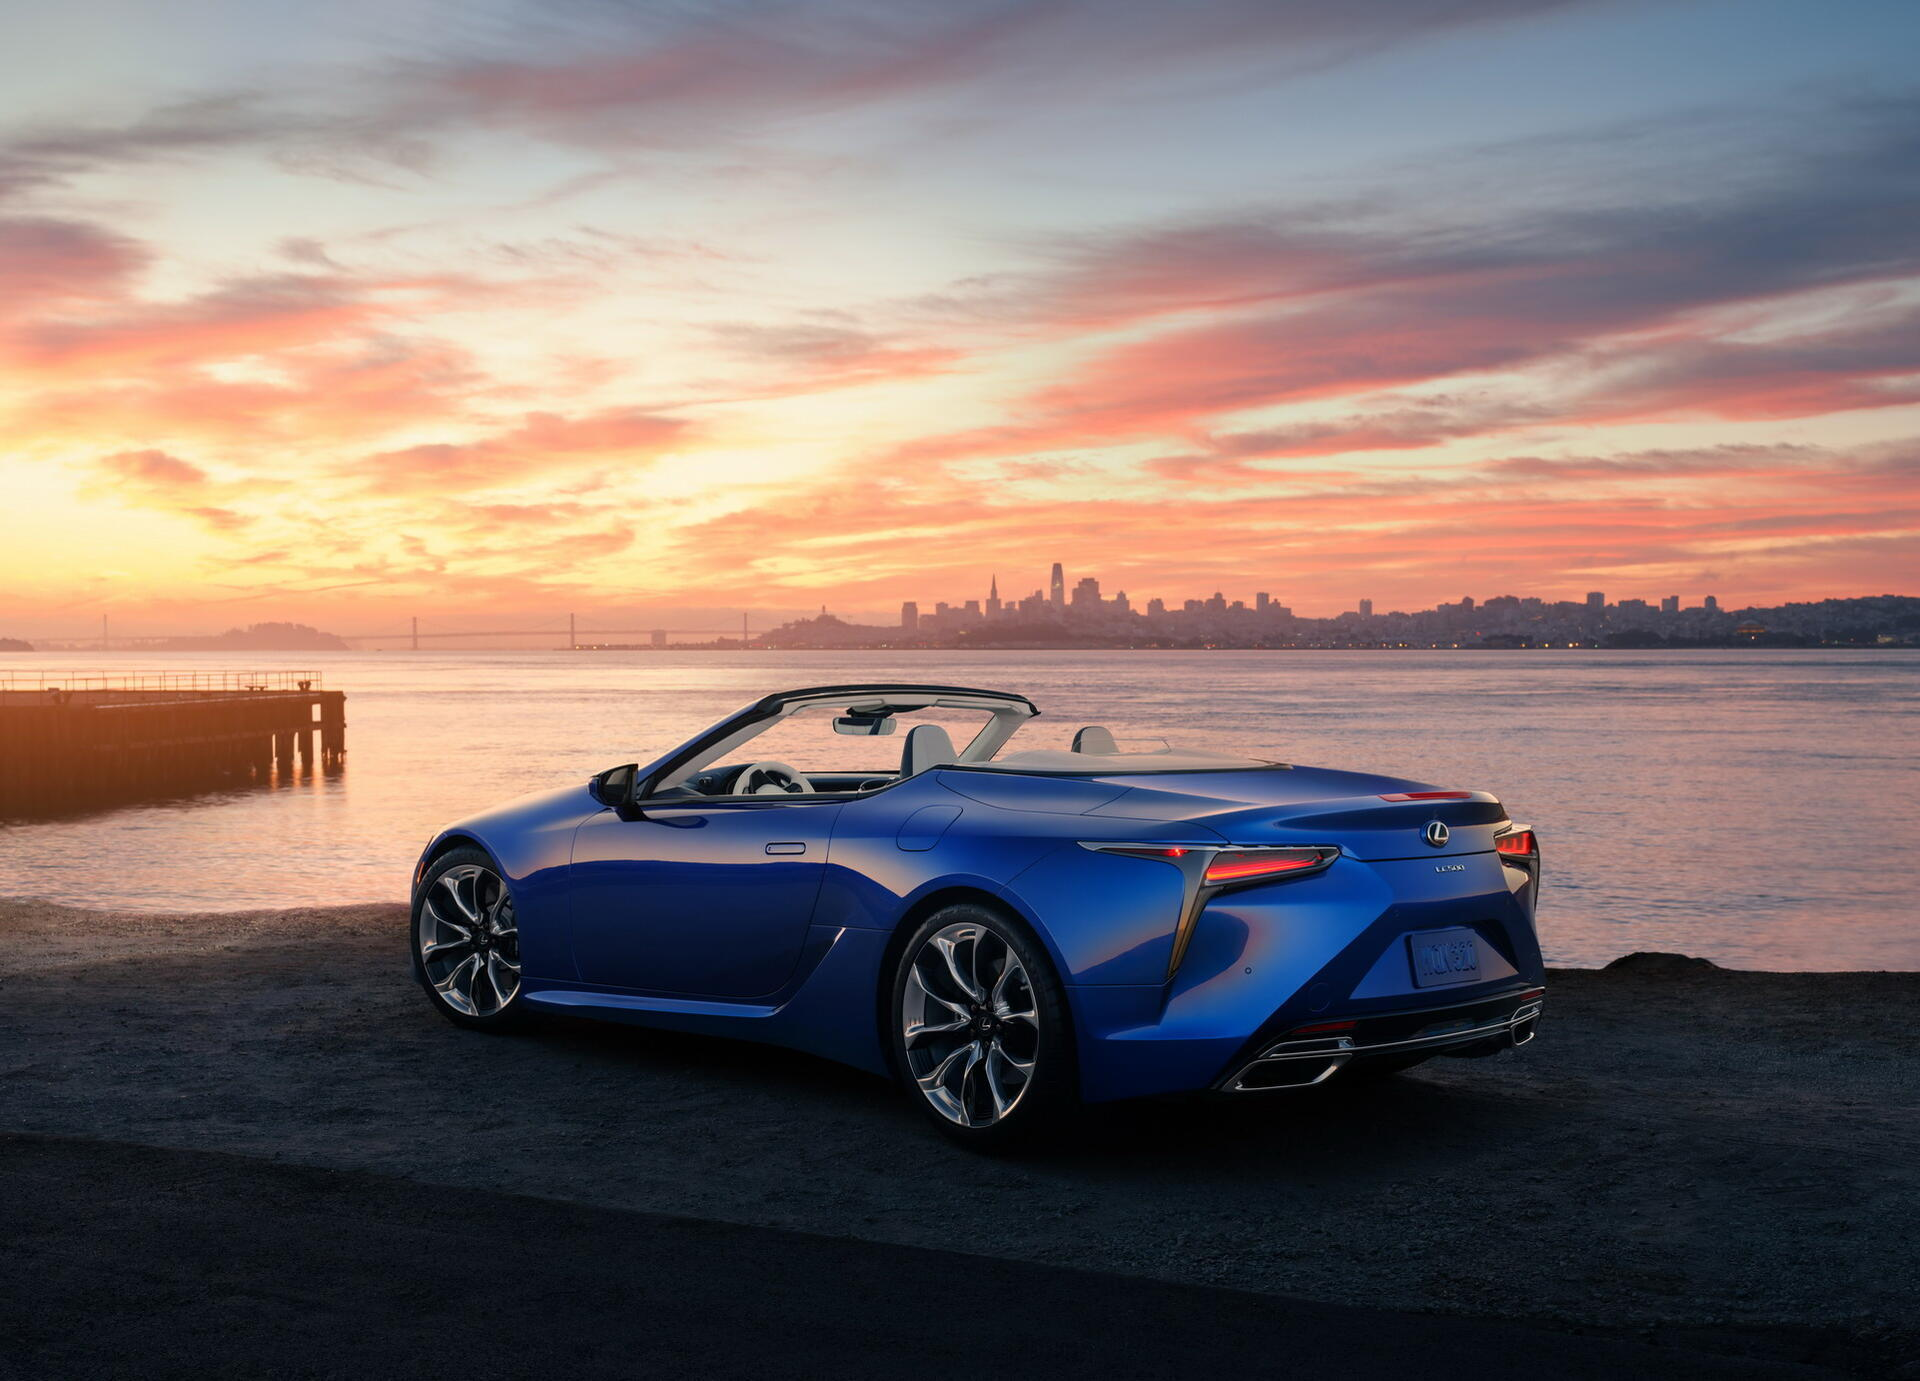 chiec-lexus-lc500-convertible-inspiration-2021-dau-tien-co-gia-2-trieu-usd